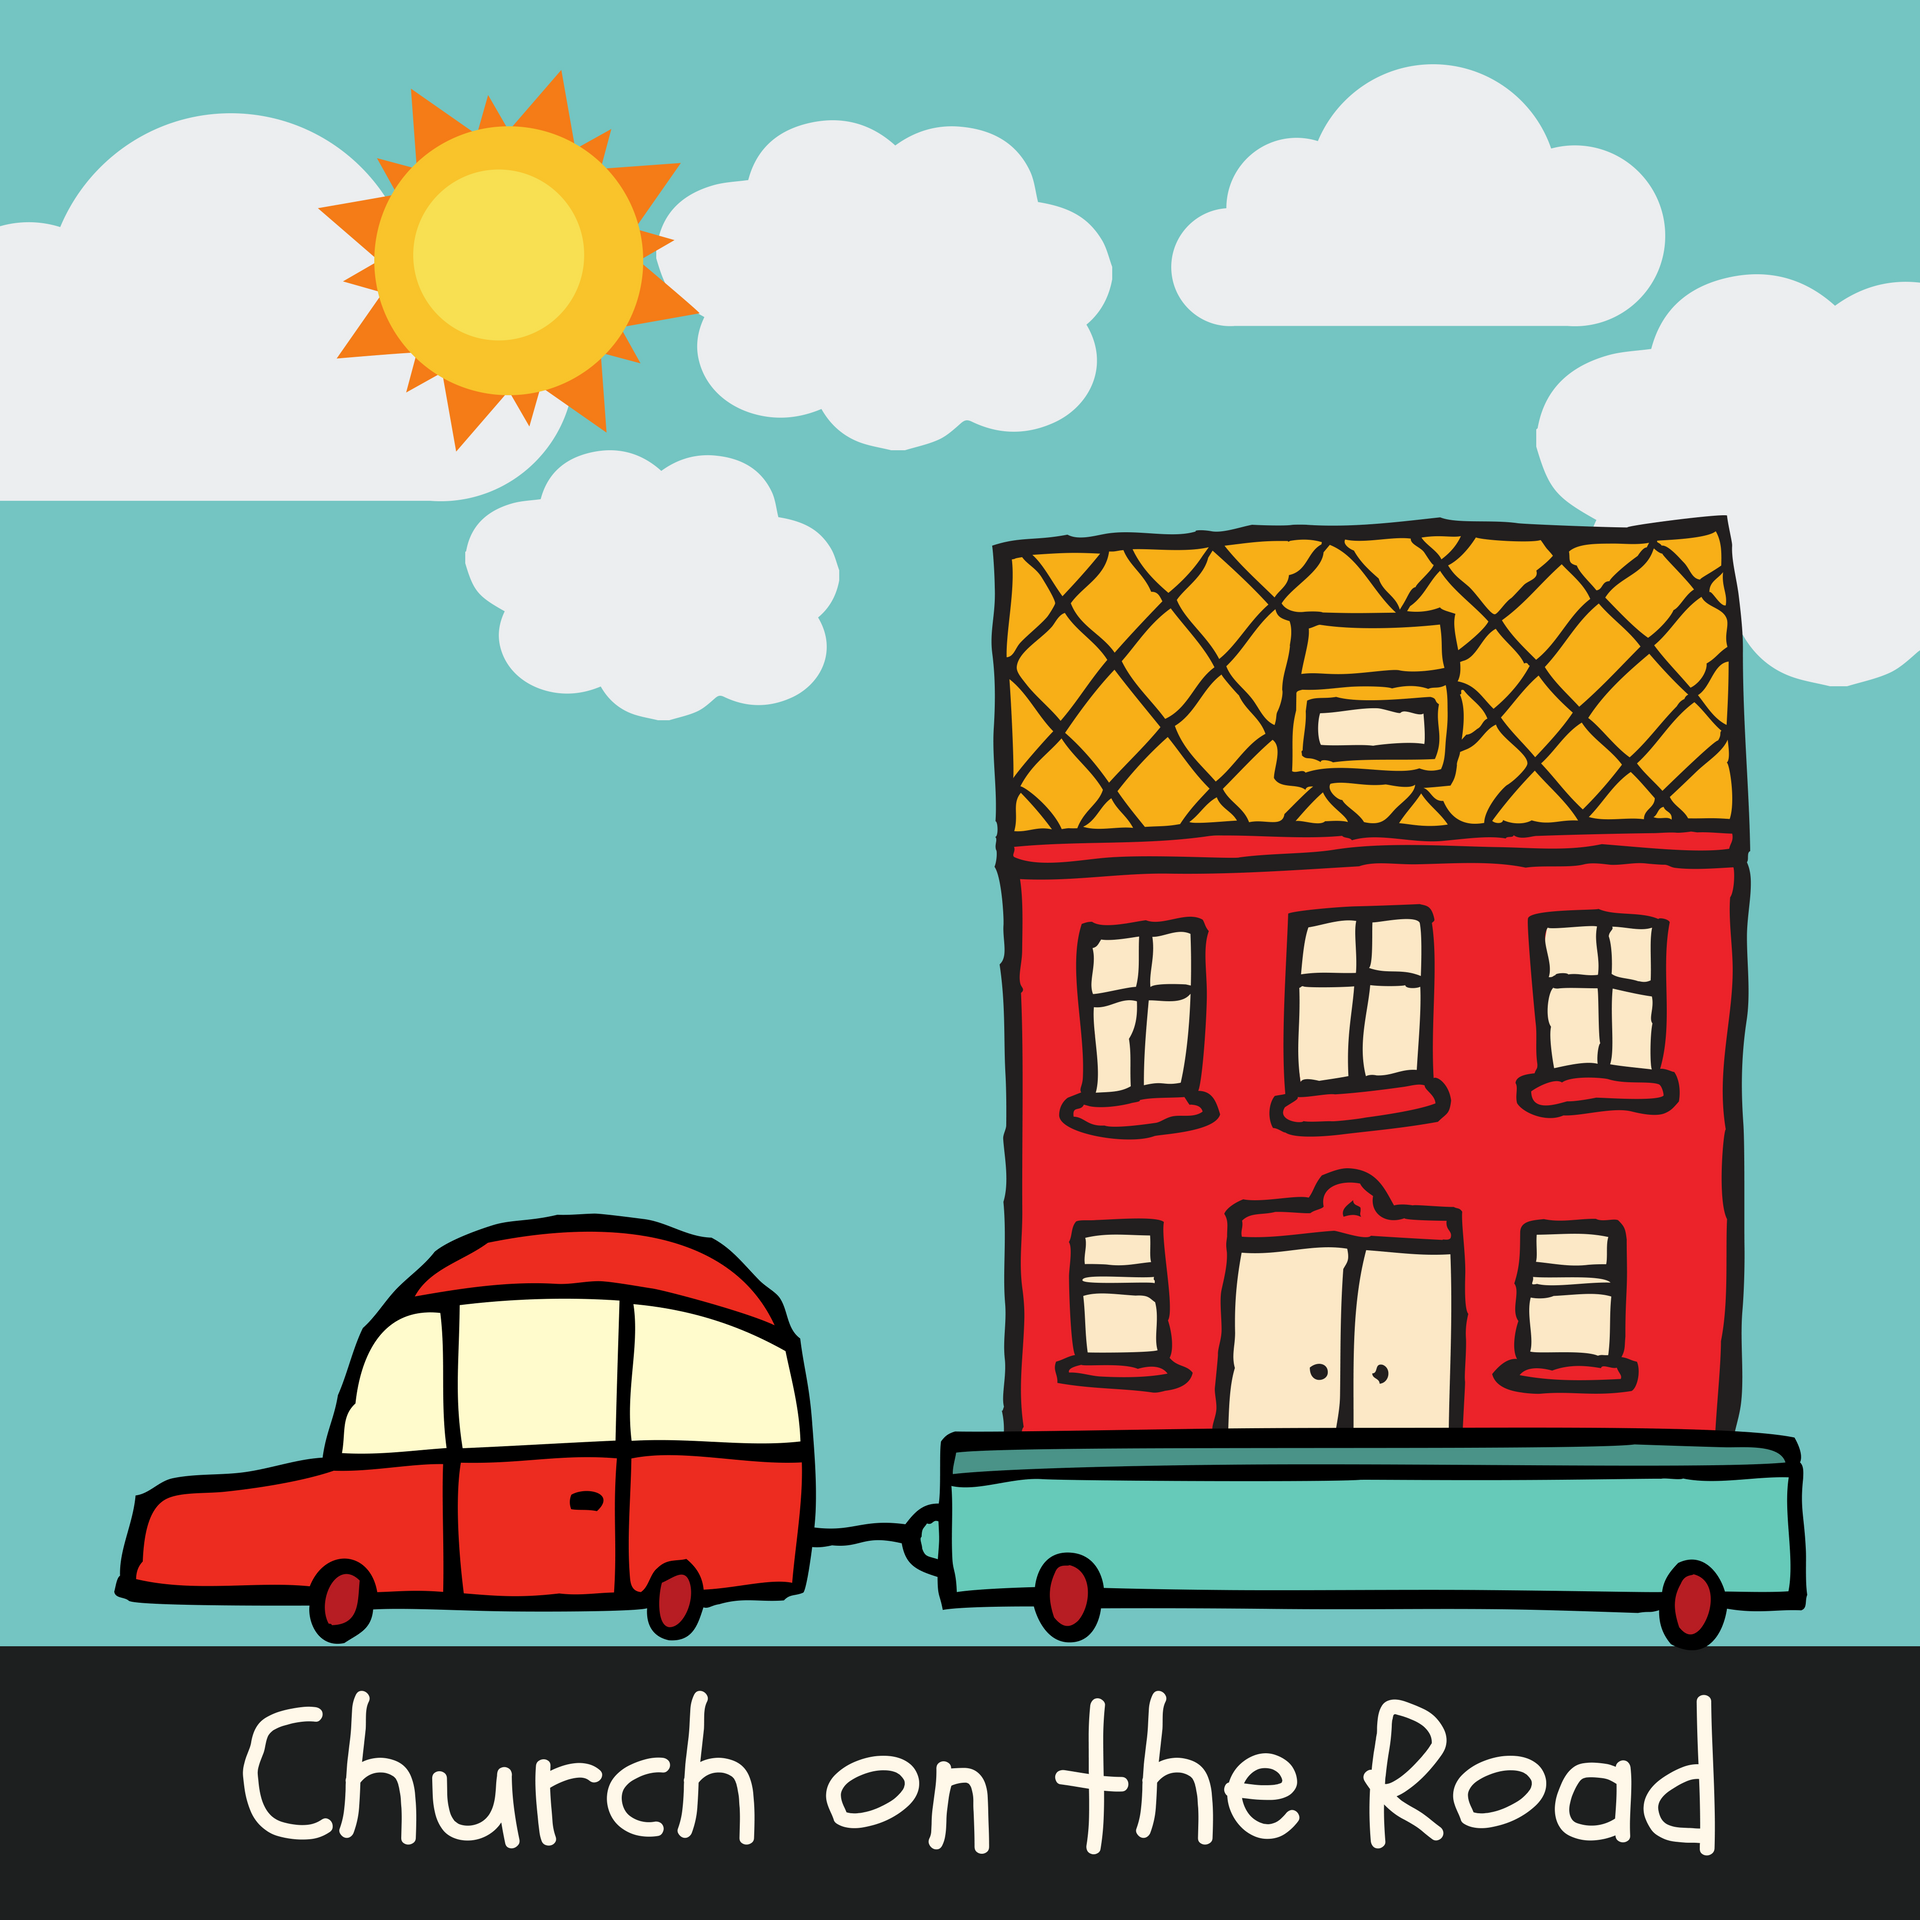 Copy of Church on the Road Square.png